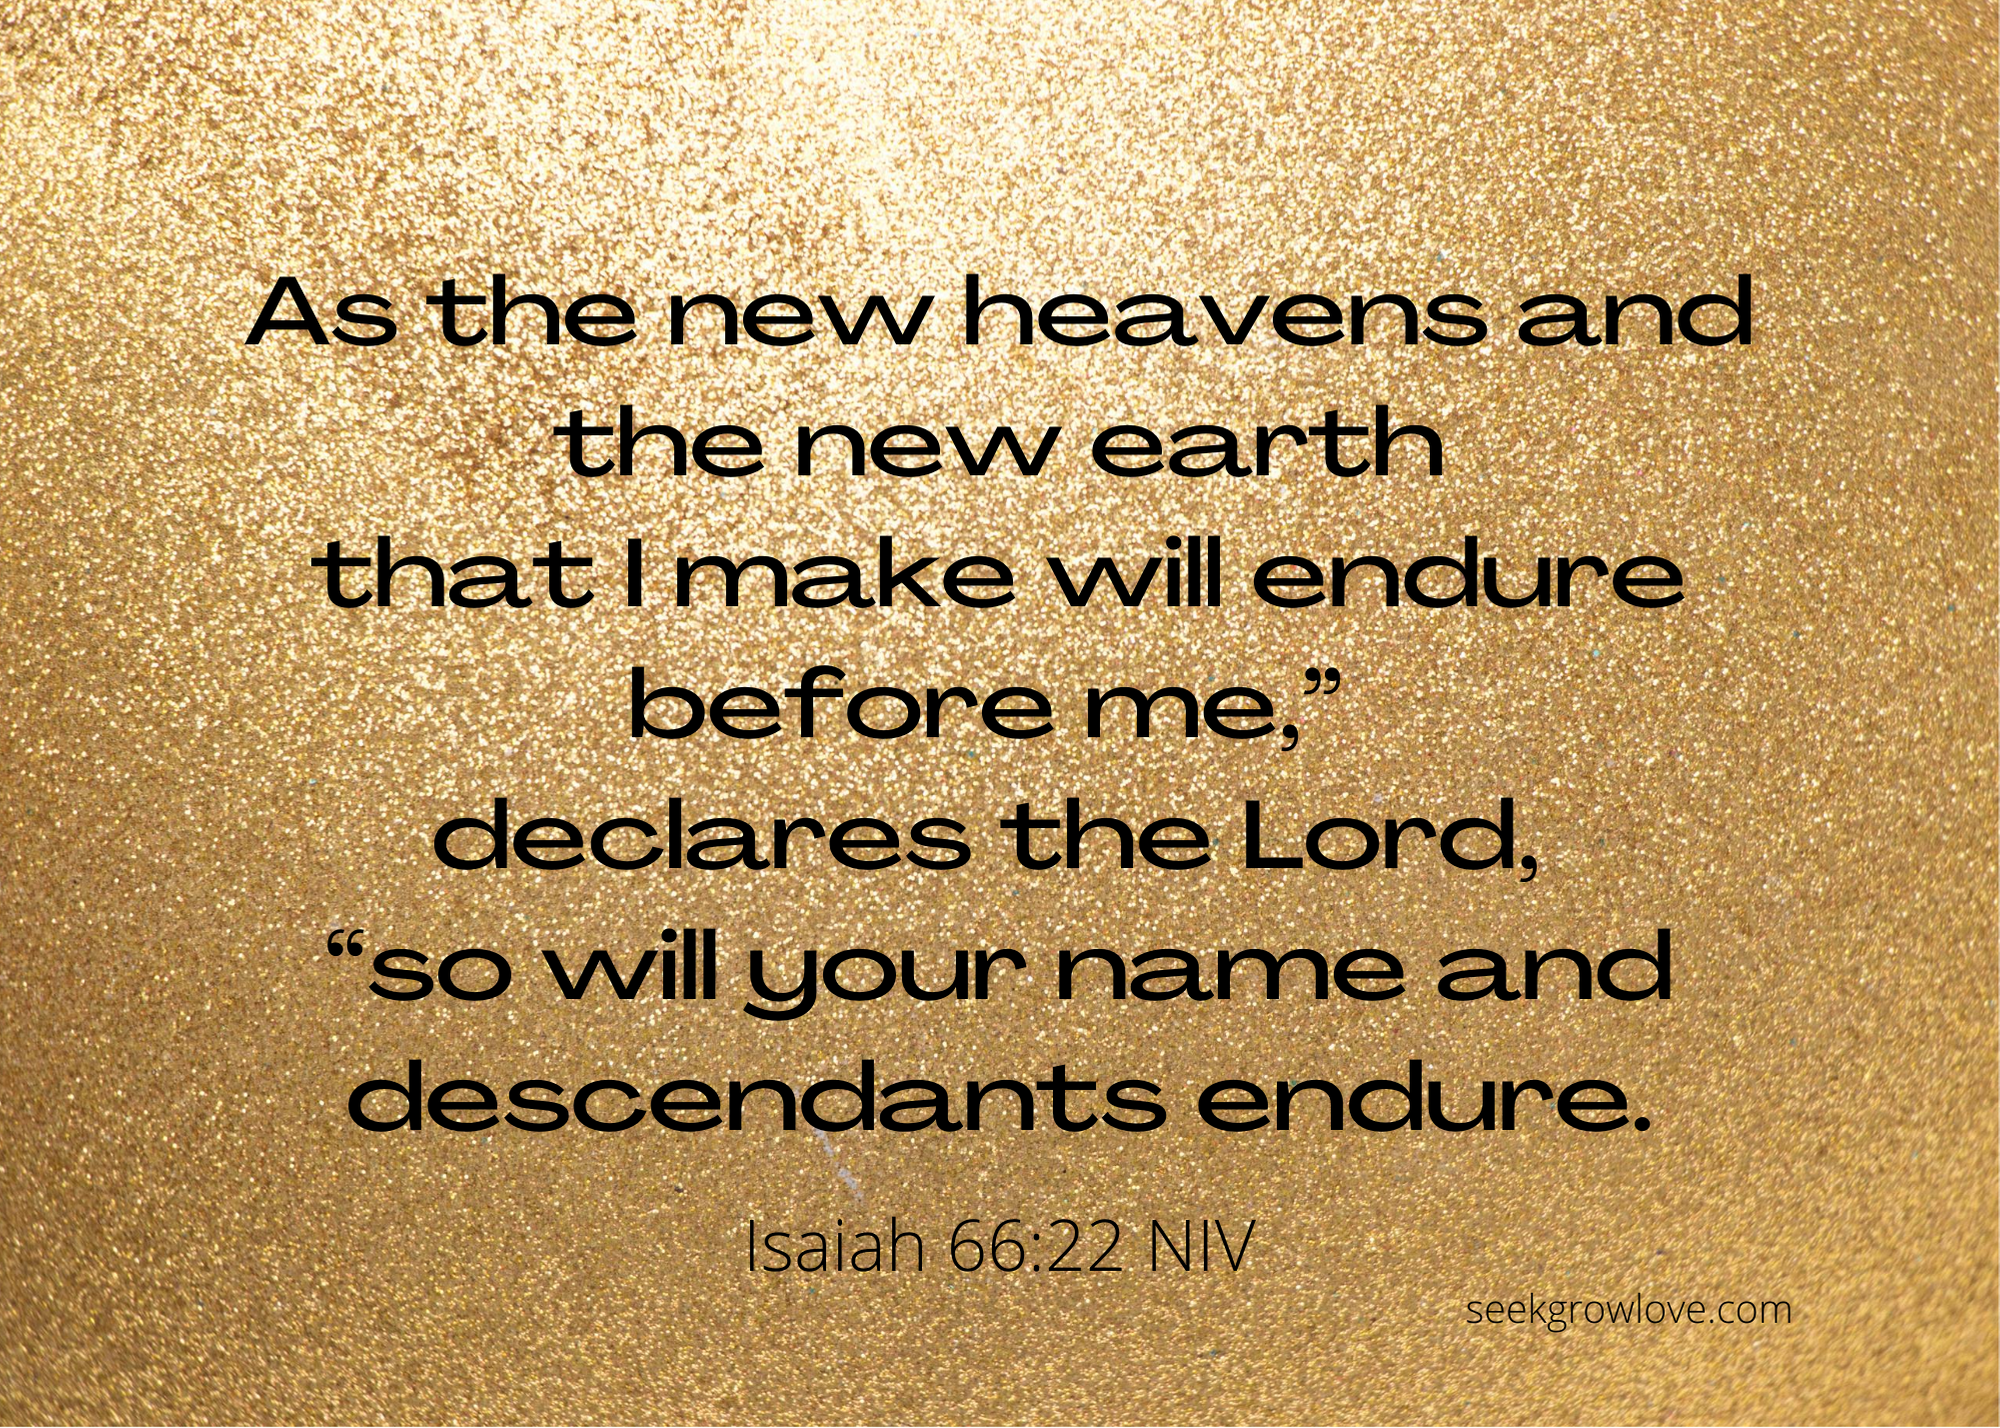 """As the new heavens and the new earth that I make will endure before me,"""" declares the Lord, """"so will your name and descendants endure."""